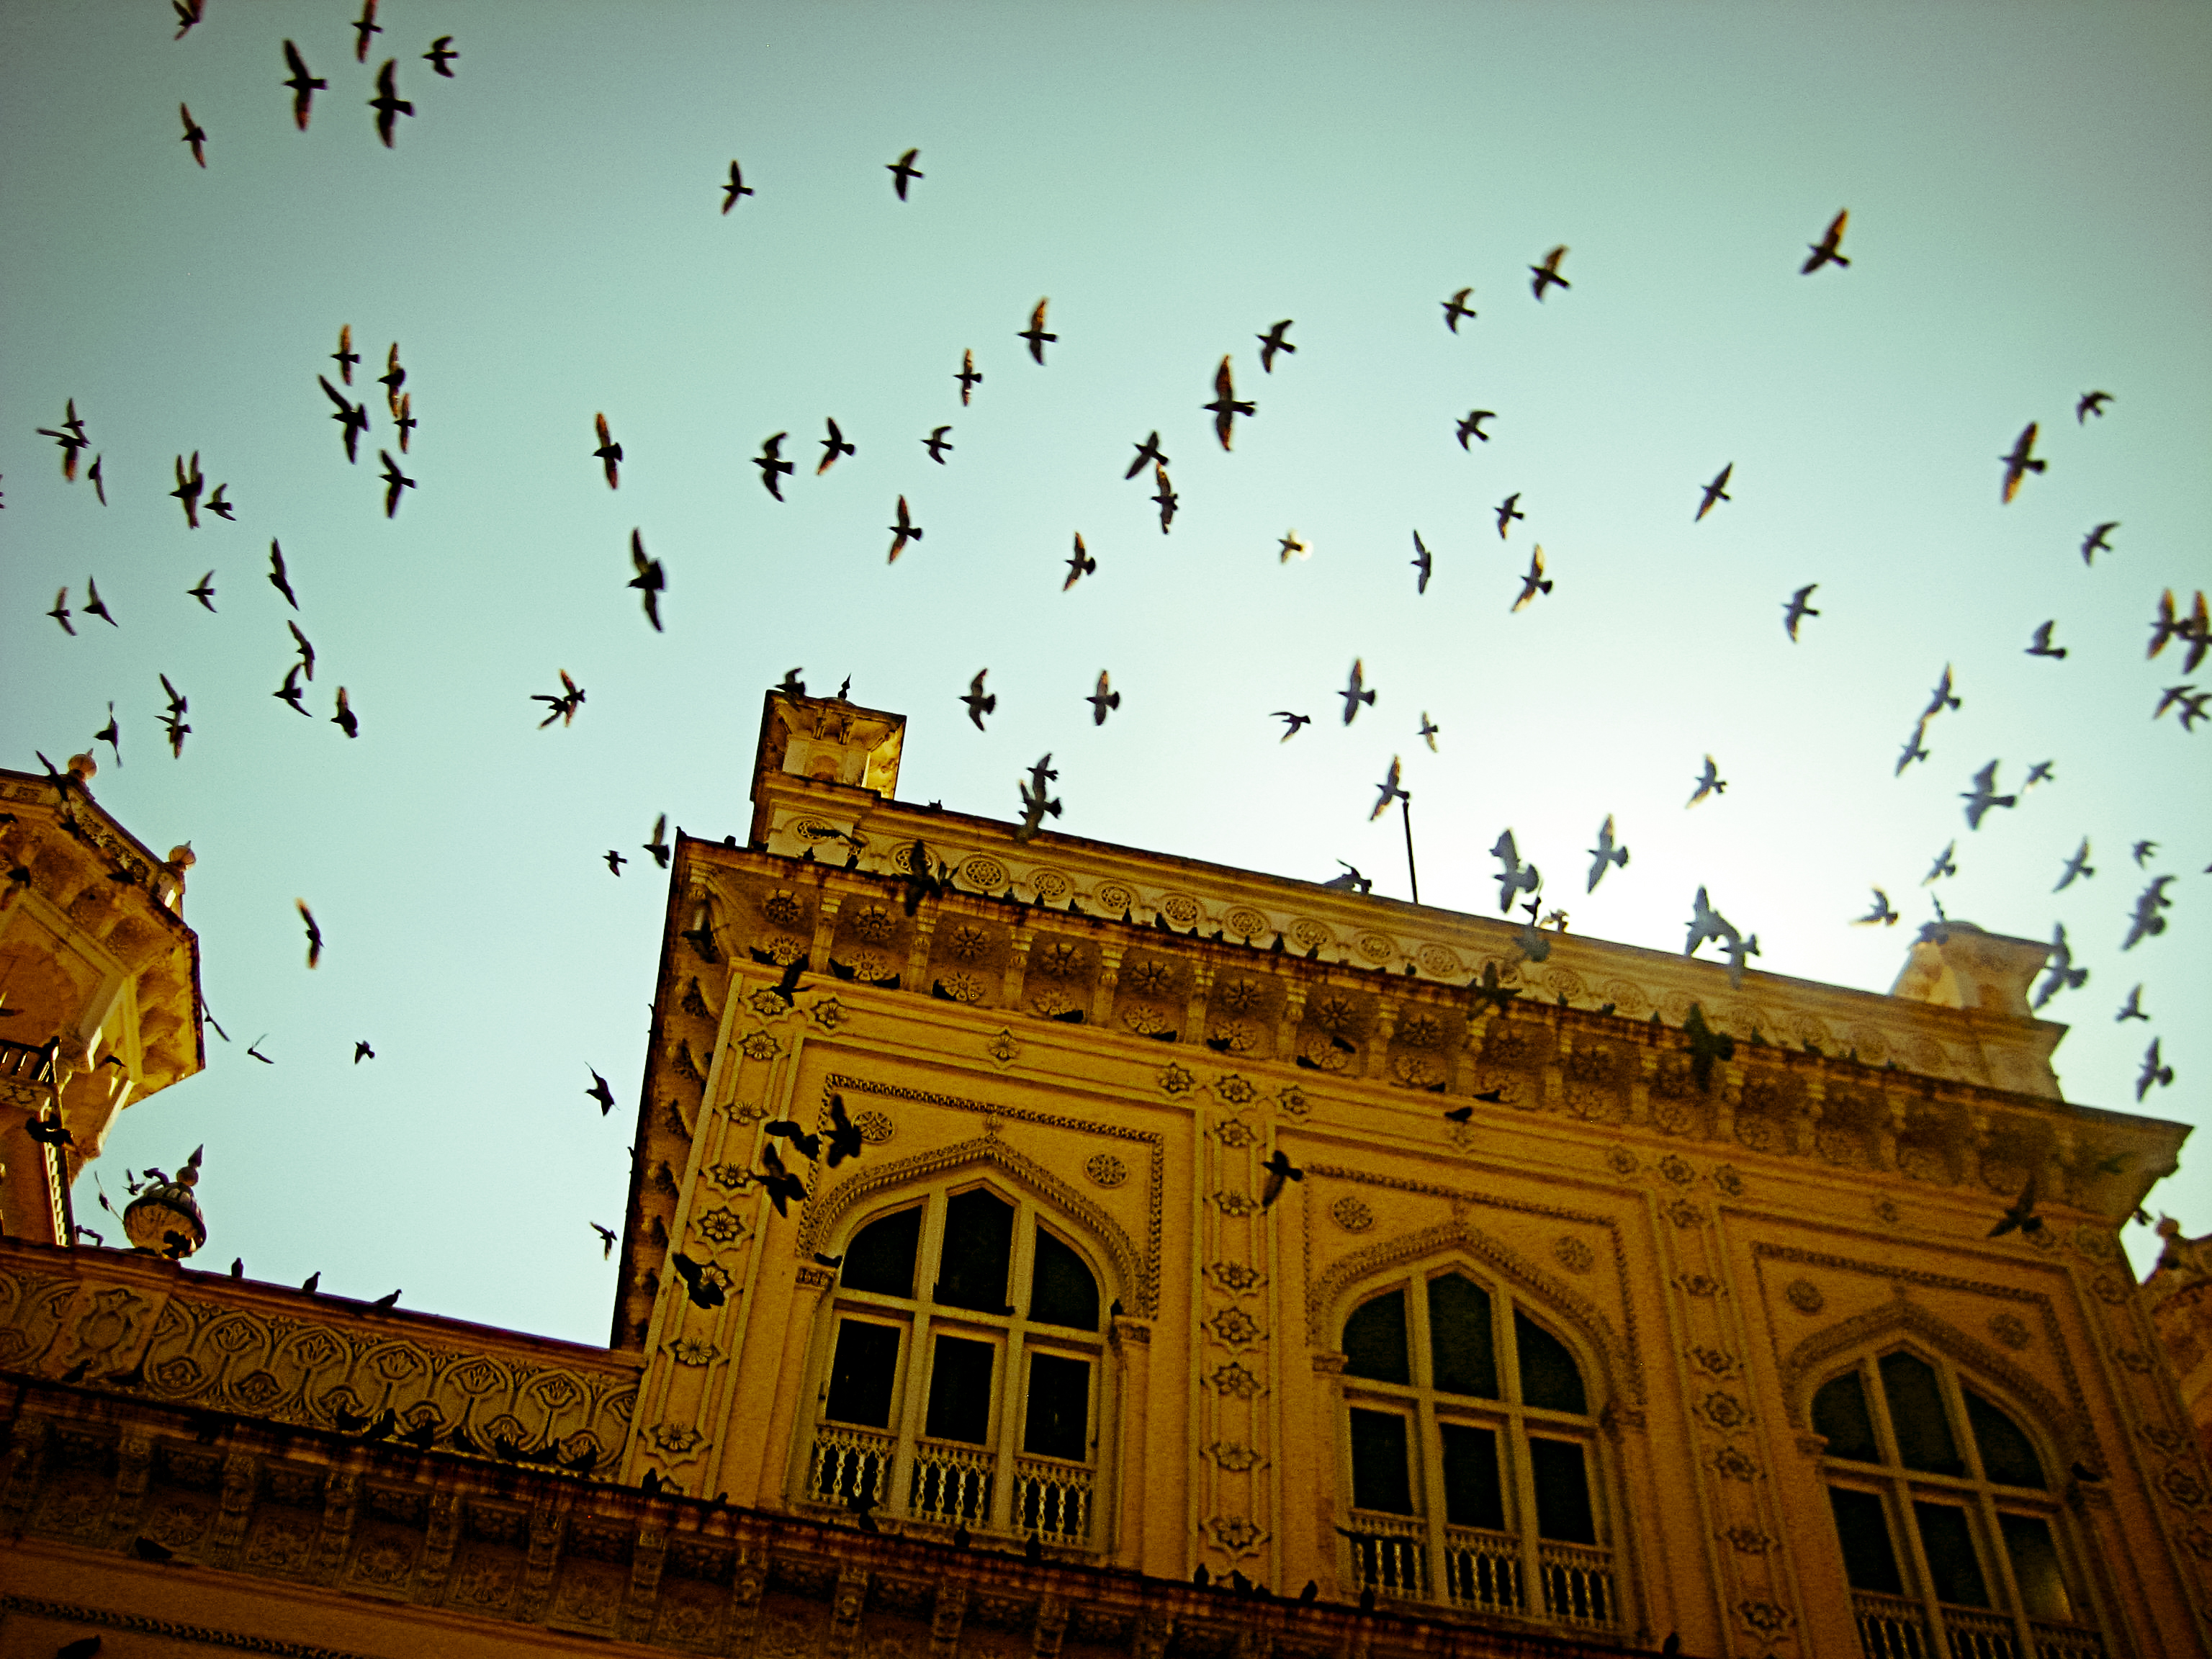 Birds in flight, Jaipur, 2011